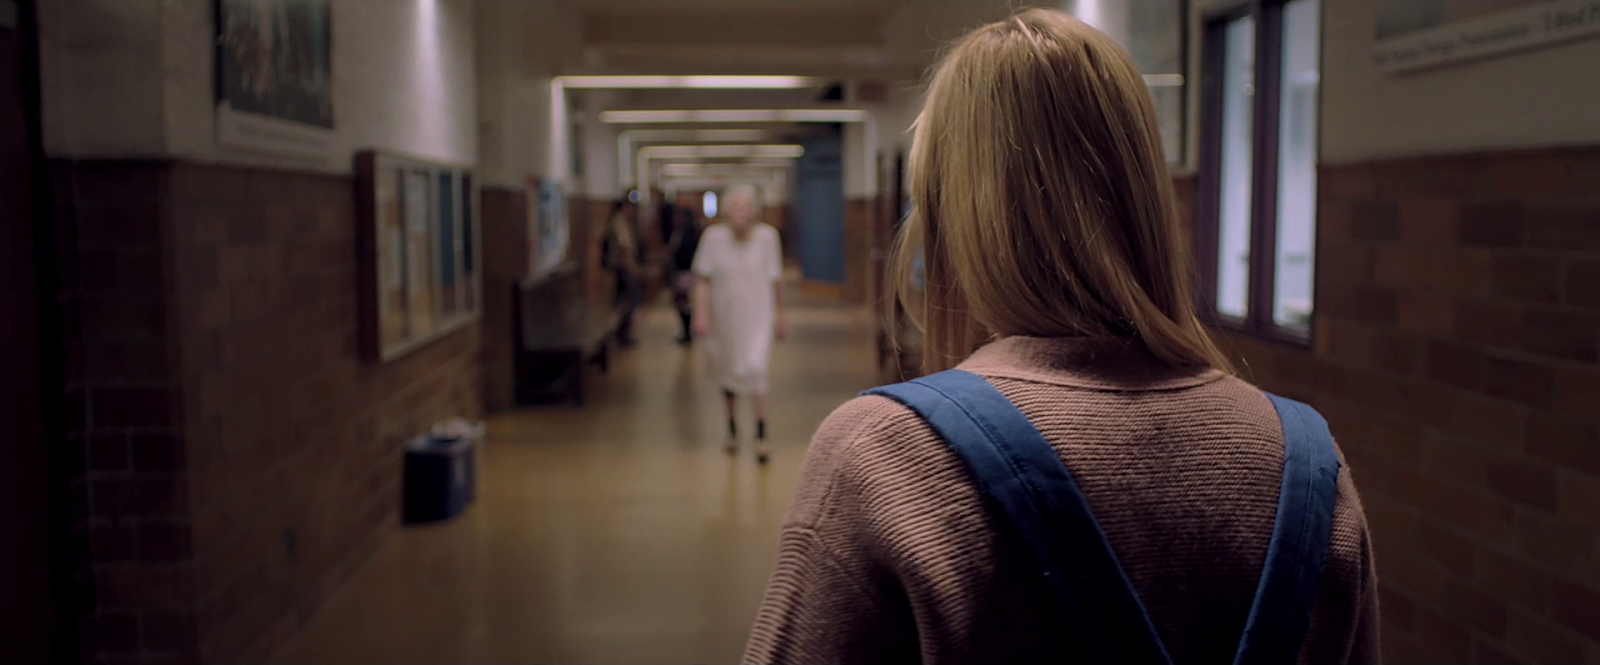 25. It Follows